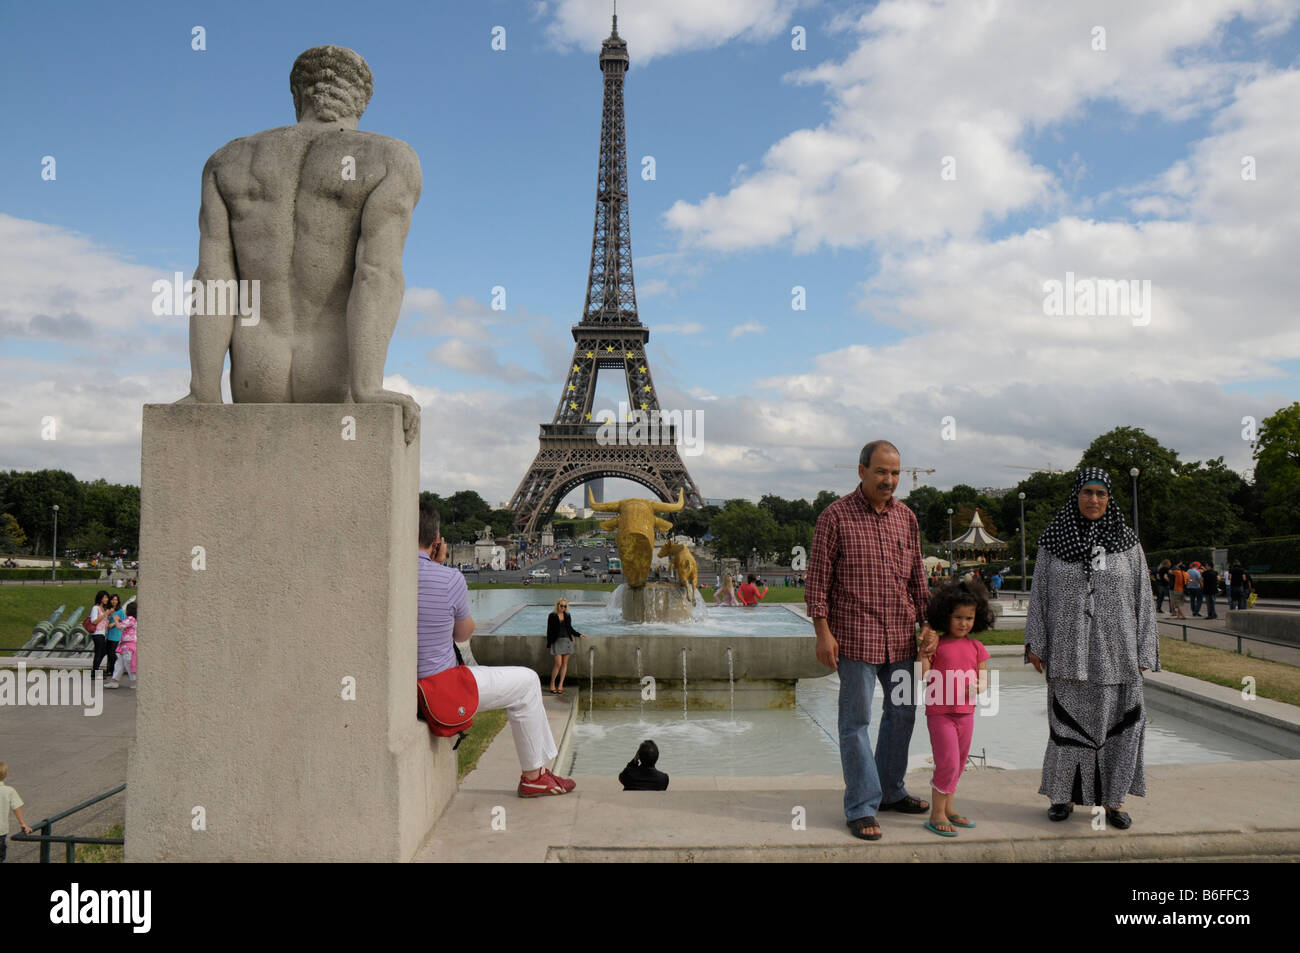 Immigrant family posing in front of the Eiffel Tower, Paris, France, Europe - Stock Image